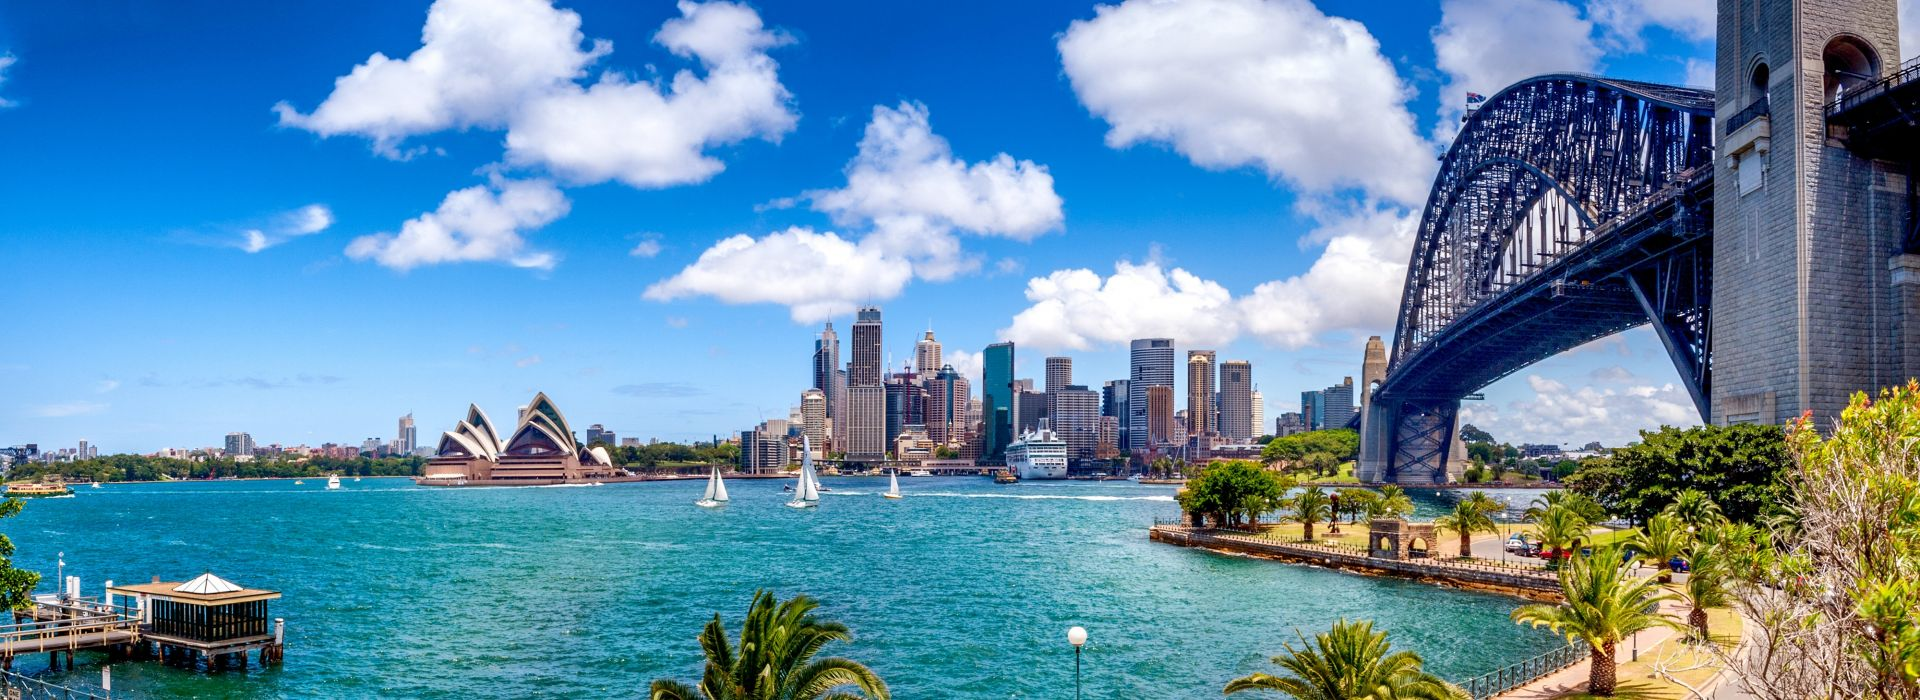 Travelling Australia - Tours and Holiday Packages in Australia